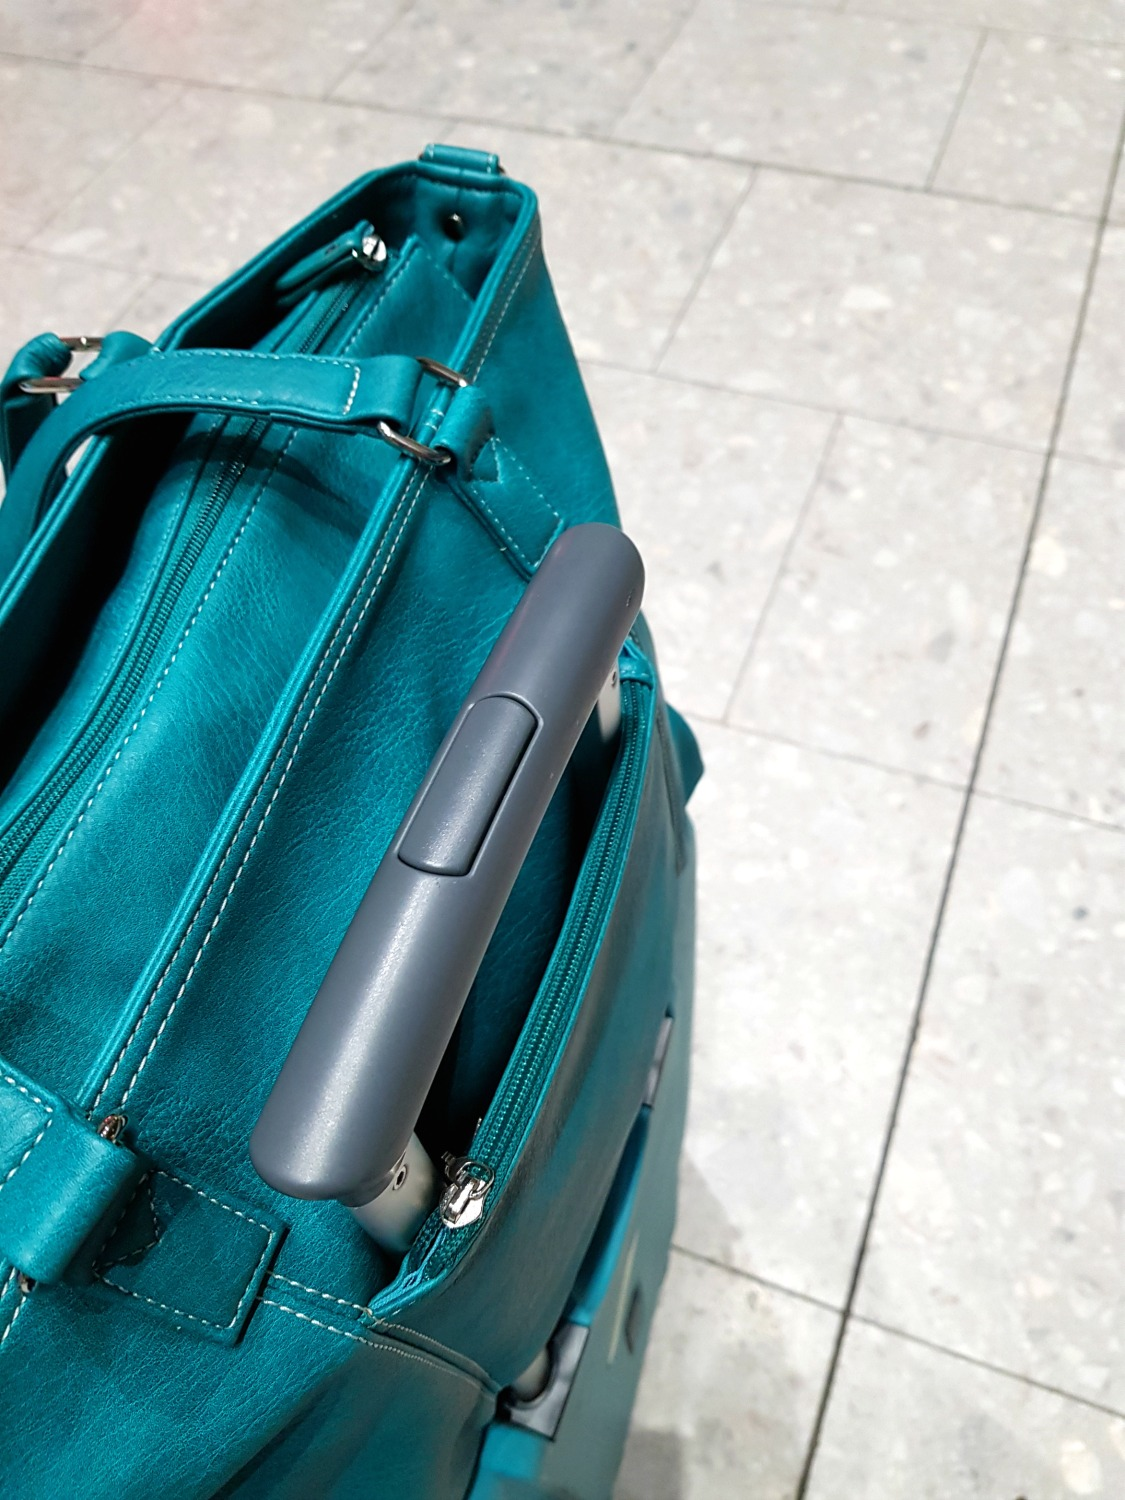 Green Mini Jen bag with special pocket slotting over the handles of a suitcase - my Mia Tui hand luggage review